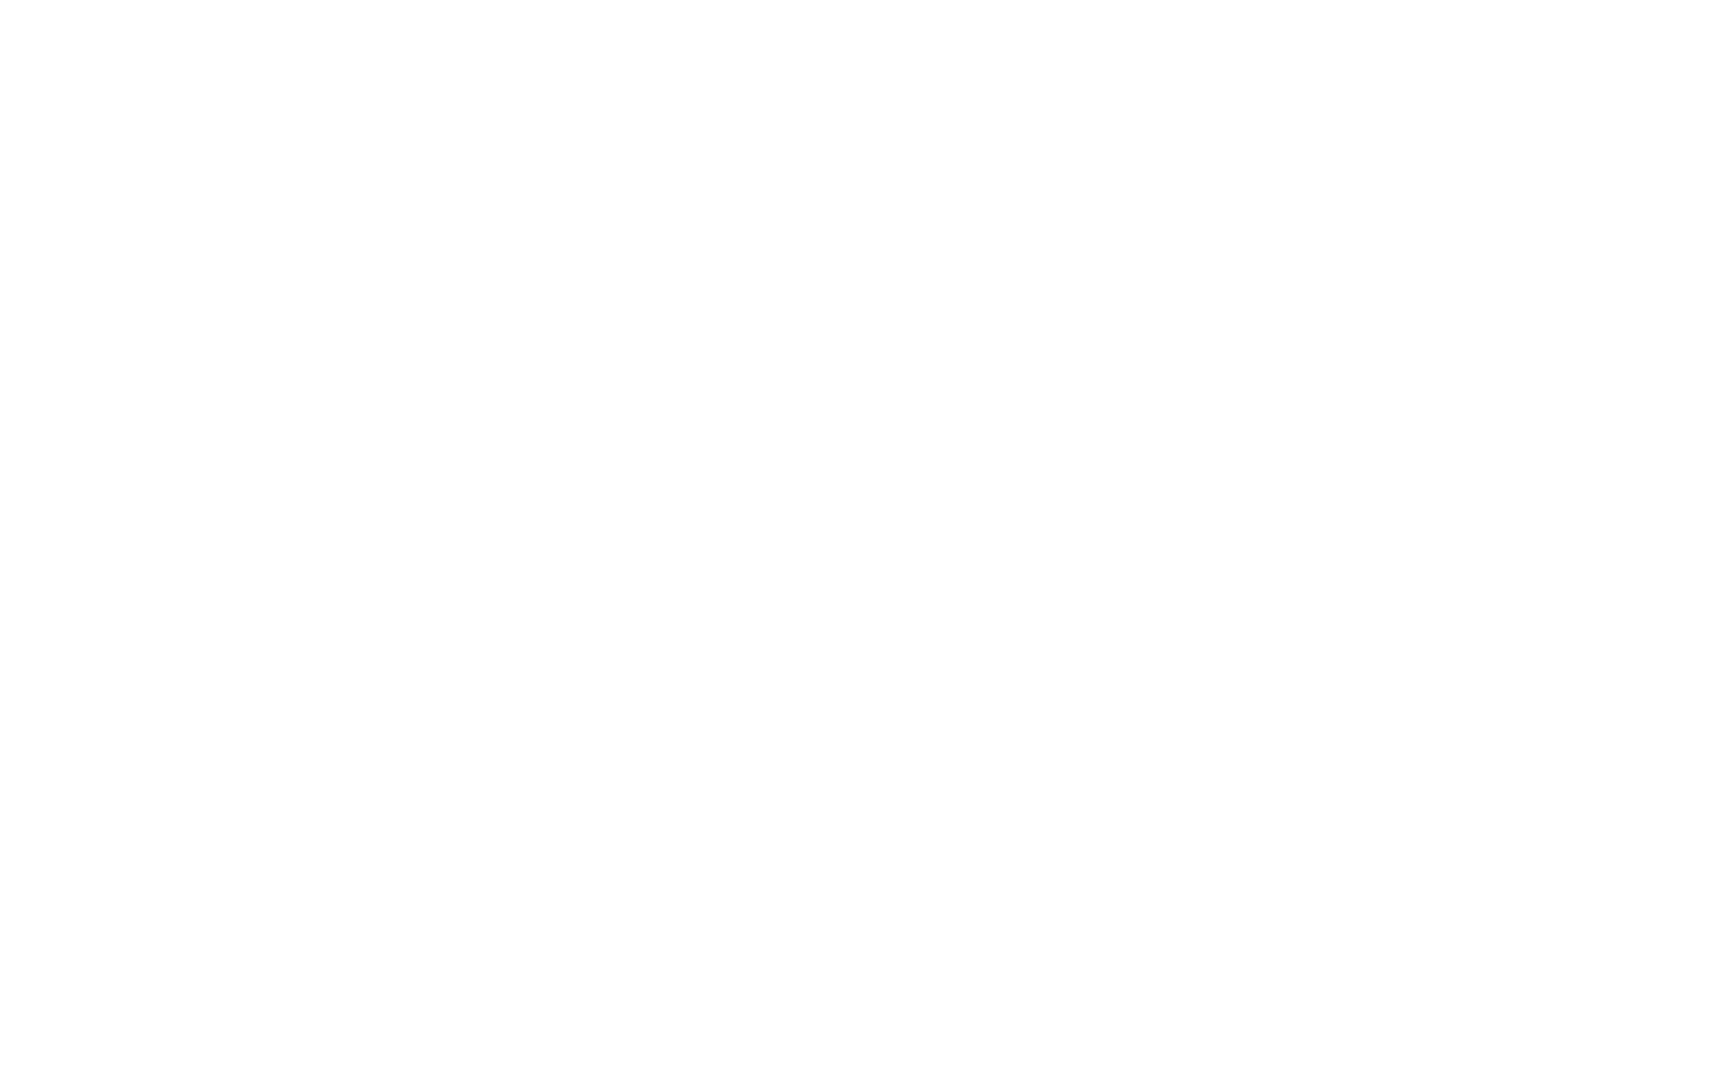 NOMINEE - Bare Bones International Film